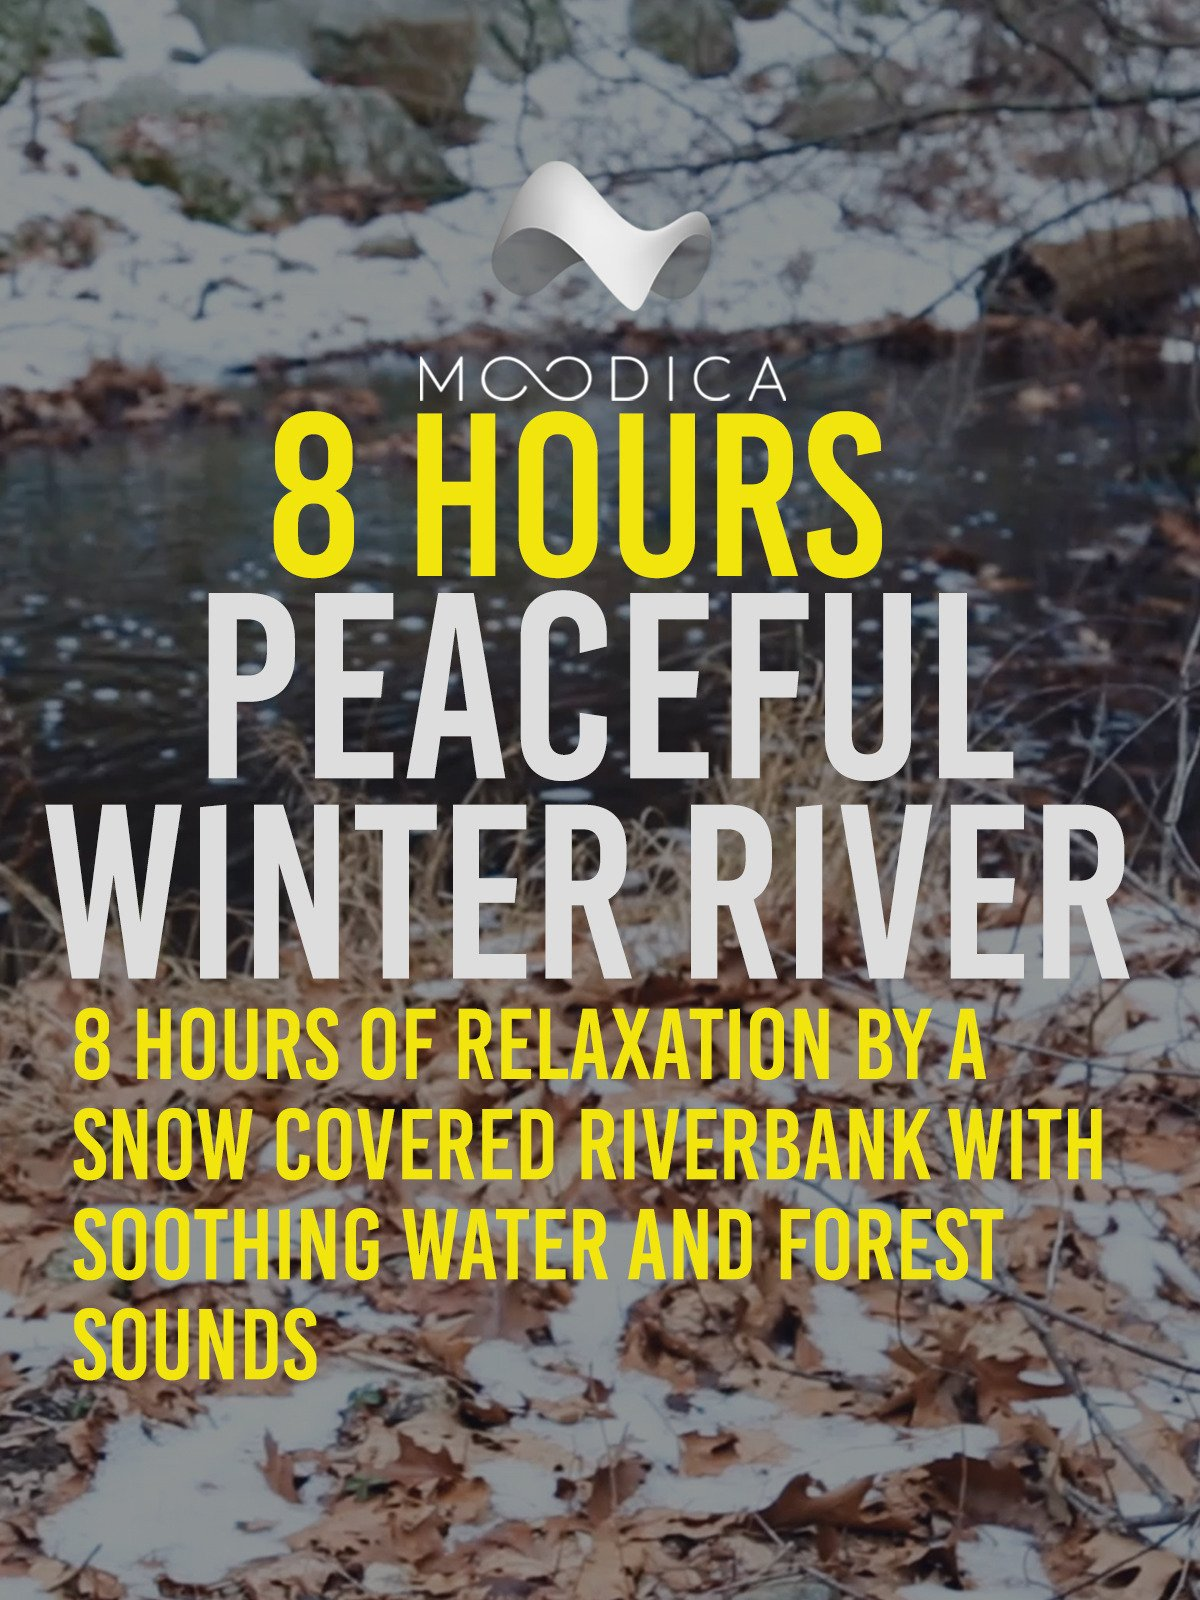 8 Hours: Peaceful Winter River: 8 Hours of Relaxation By A Snow Covered Riverbank With Soothing Water and Forest Sounds